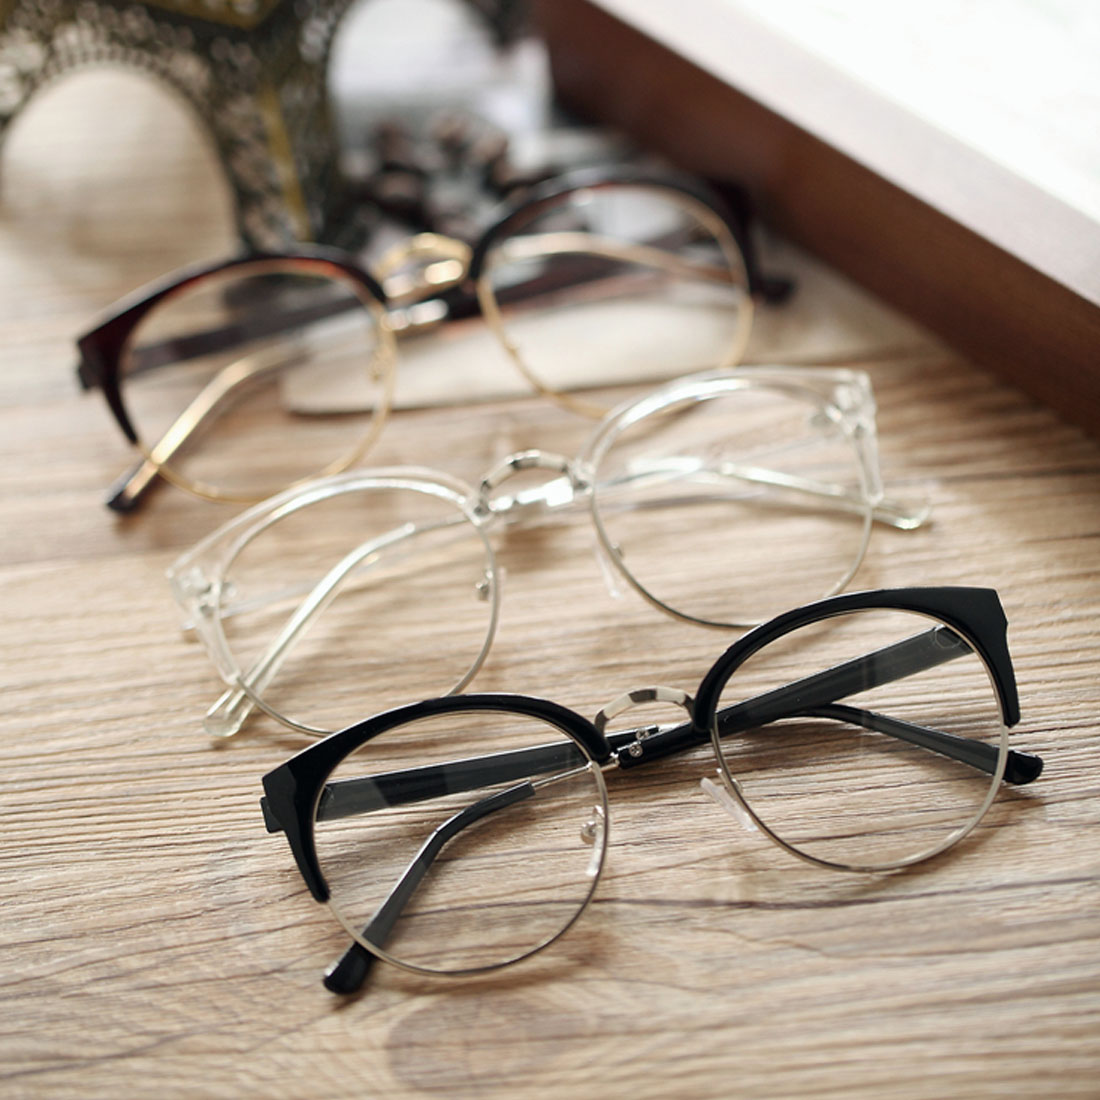 Optical-Glasses Goggles Glass-Spectacles Semi-Circle-Frame Plain Plastic Vintage Women